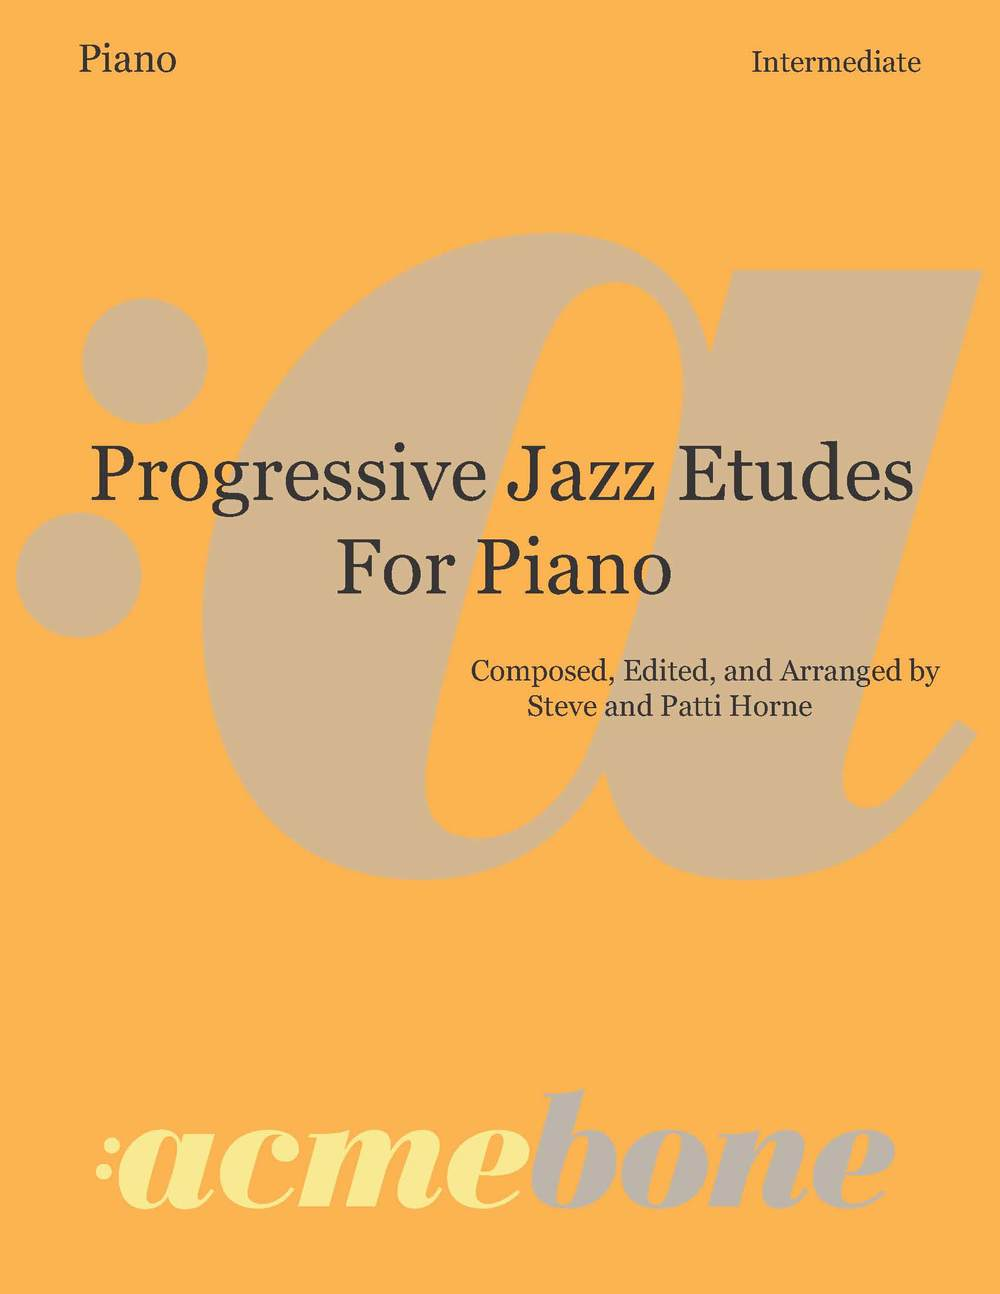 Piano Etudes_cover_bk2.jpg